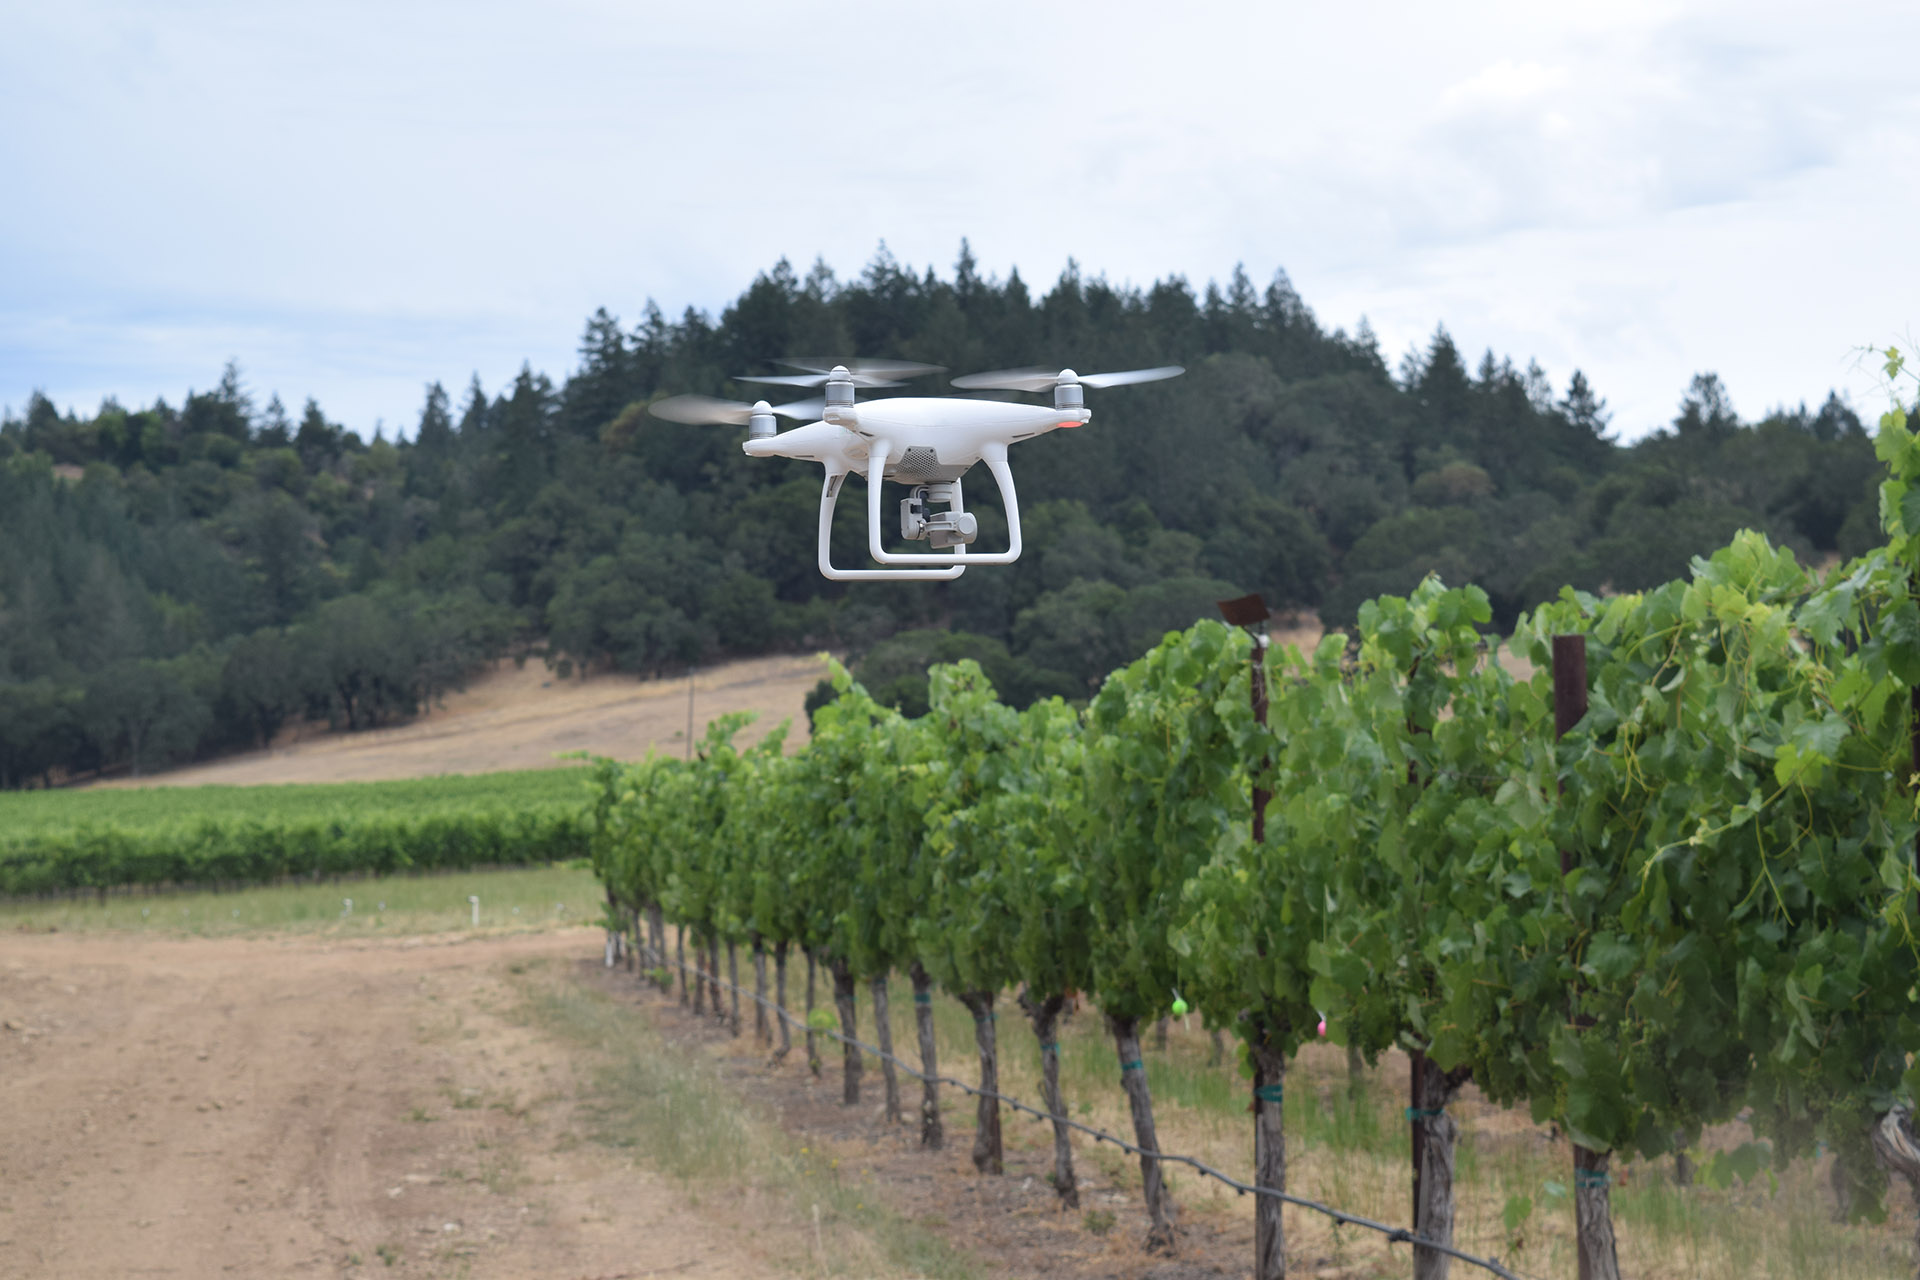 A white dron flying directly above a row of vines